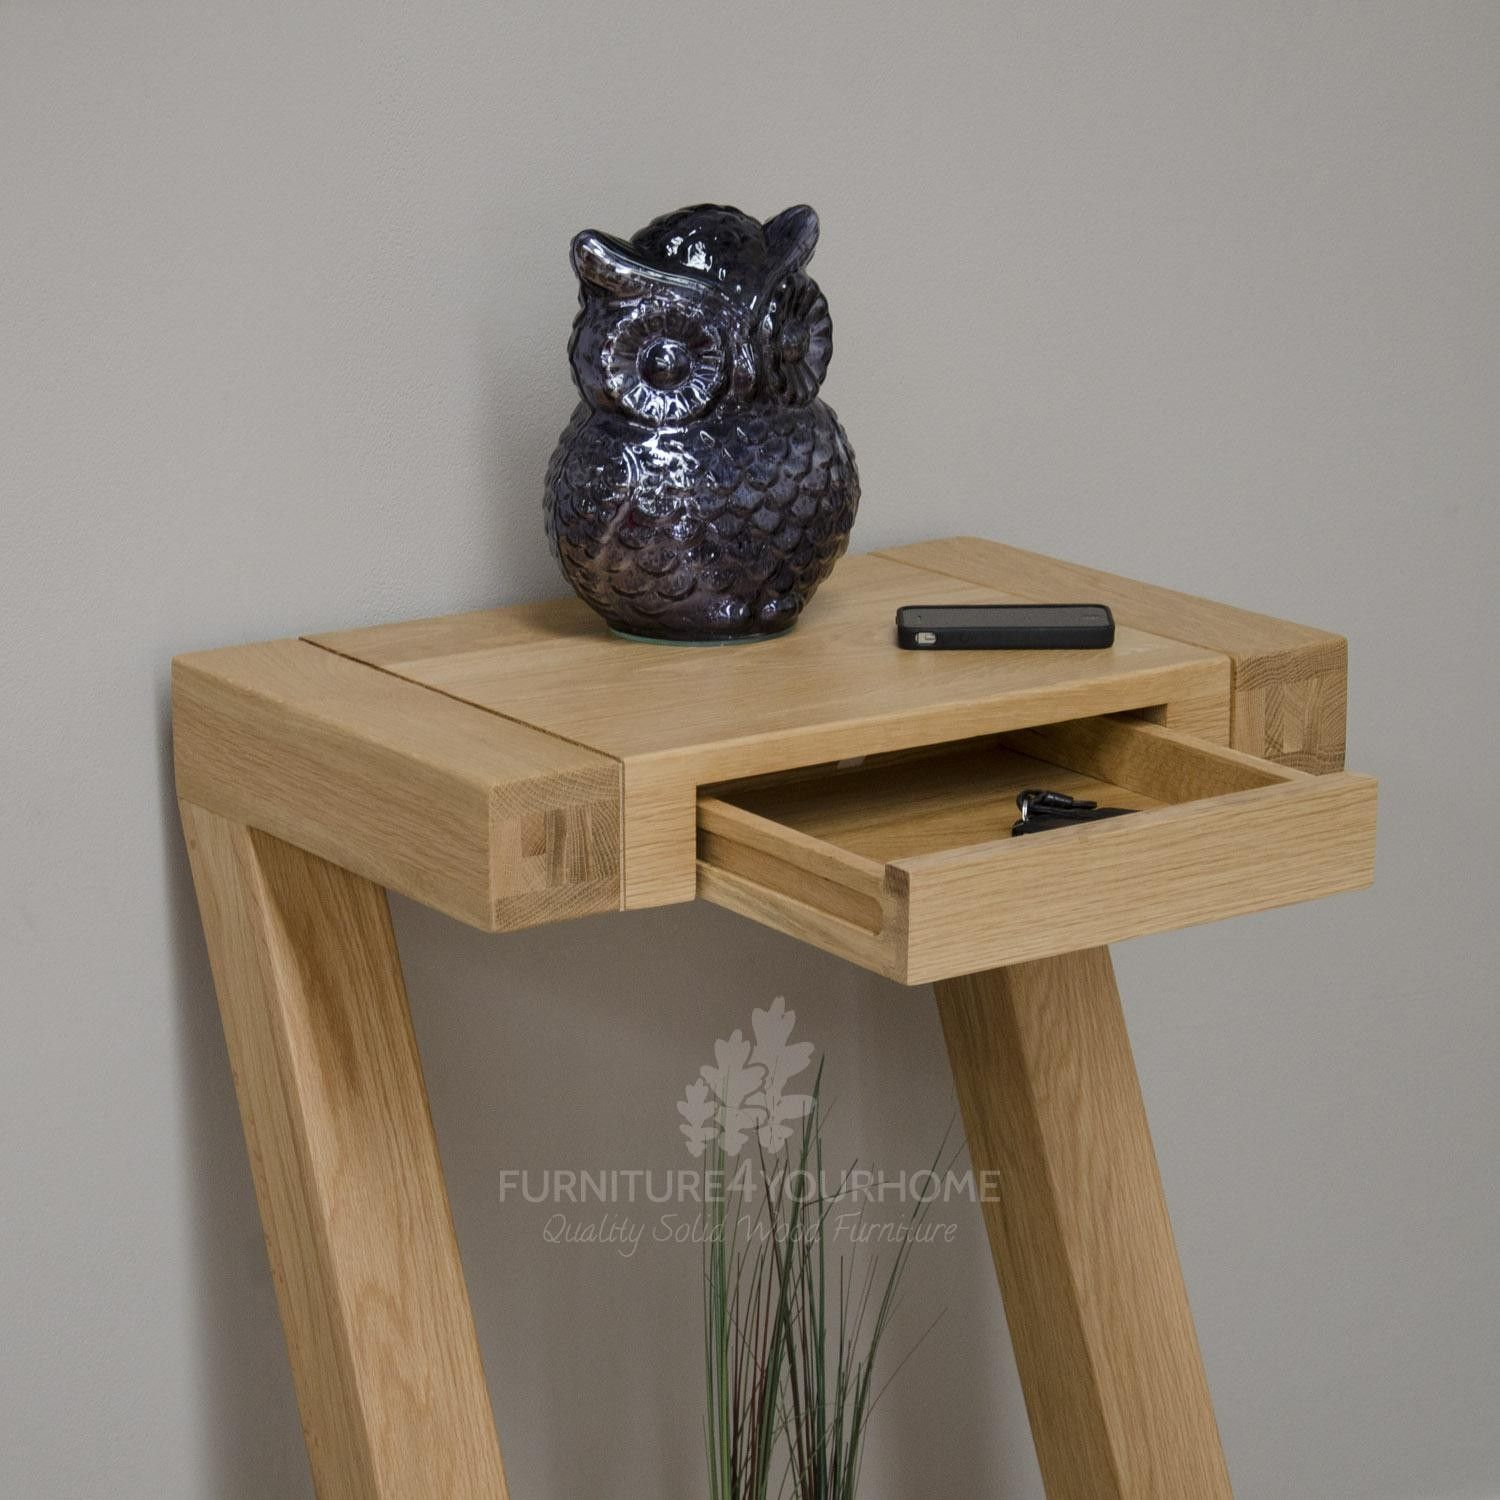 corner hall table. Z Oak Designer Small Console Table | Furniture4yourhome Corner Hall